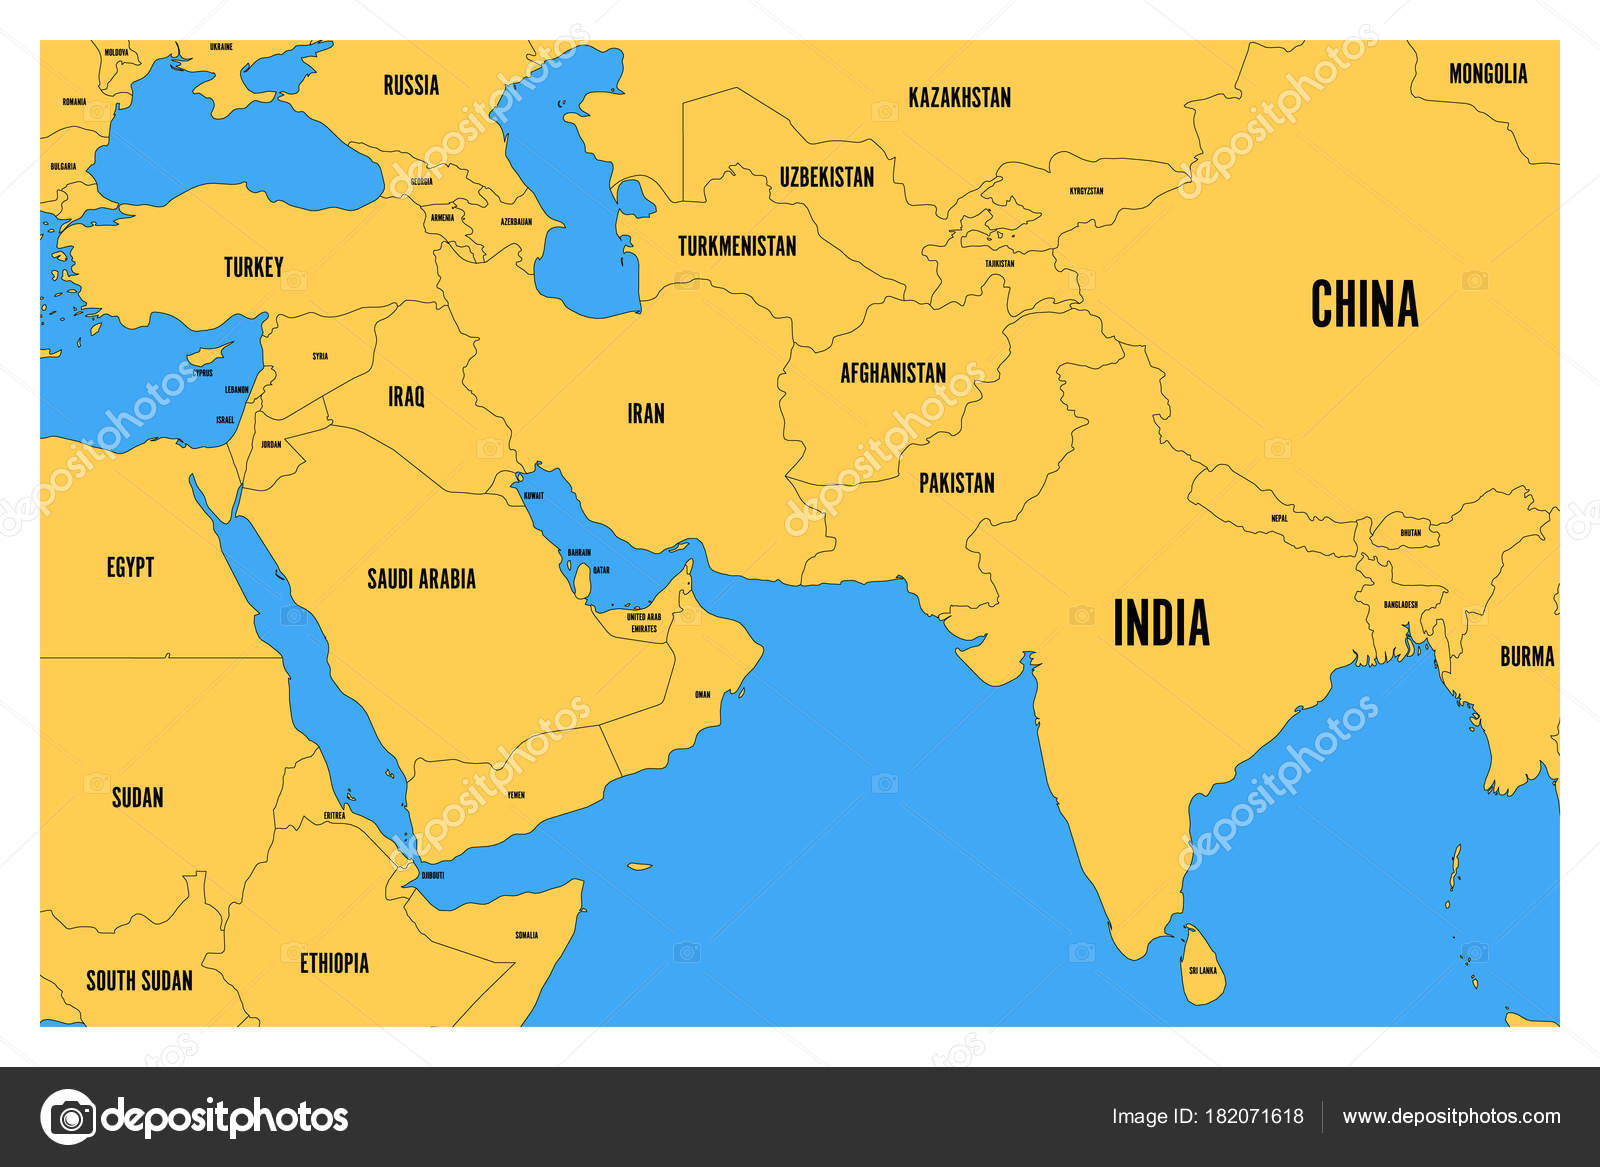 South asia world map commercial sewer diagram 1996 ford contour political map of south asia and middle east simple flat vector depositphotos 182071618 stock illustration political gumiabroncs Gallery